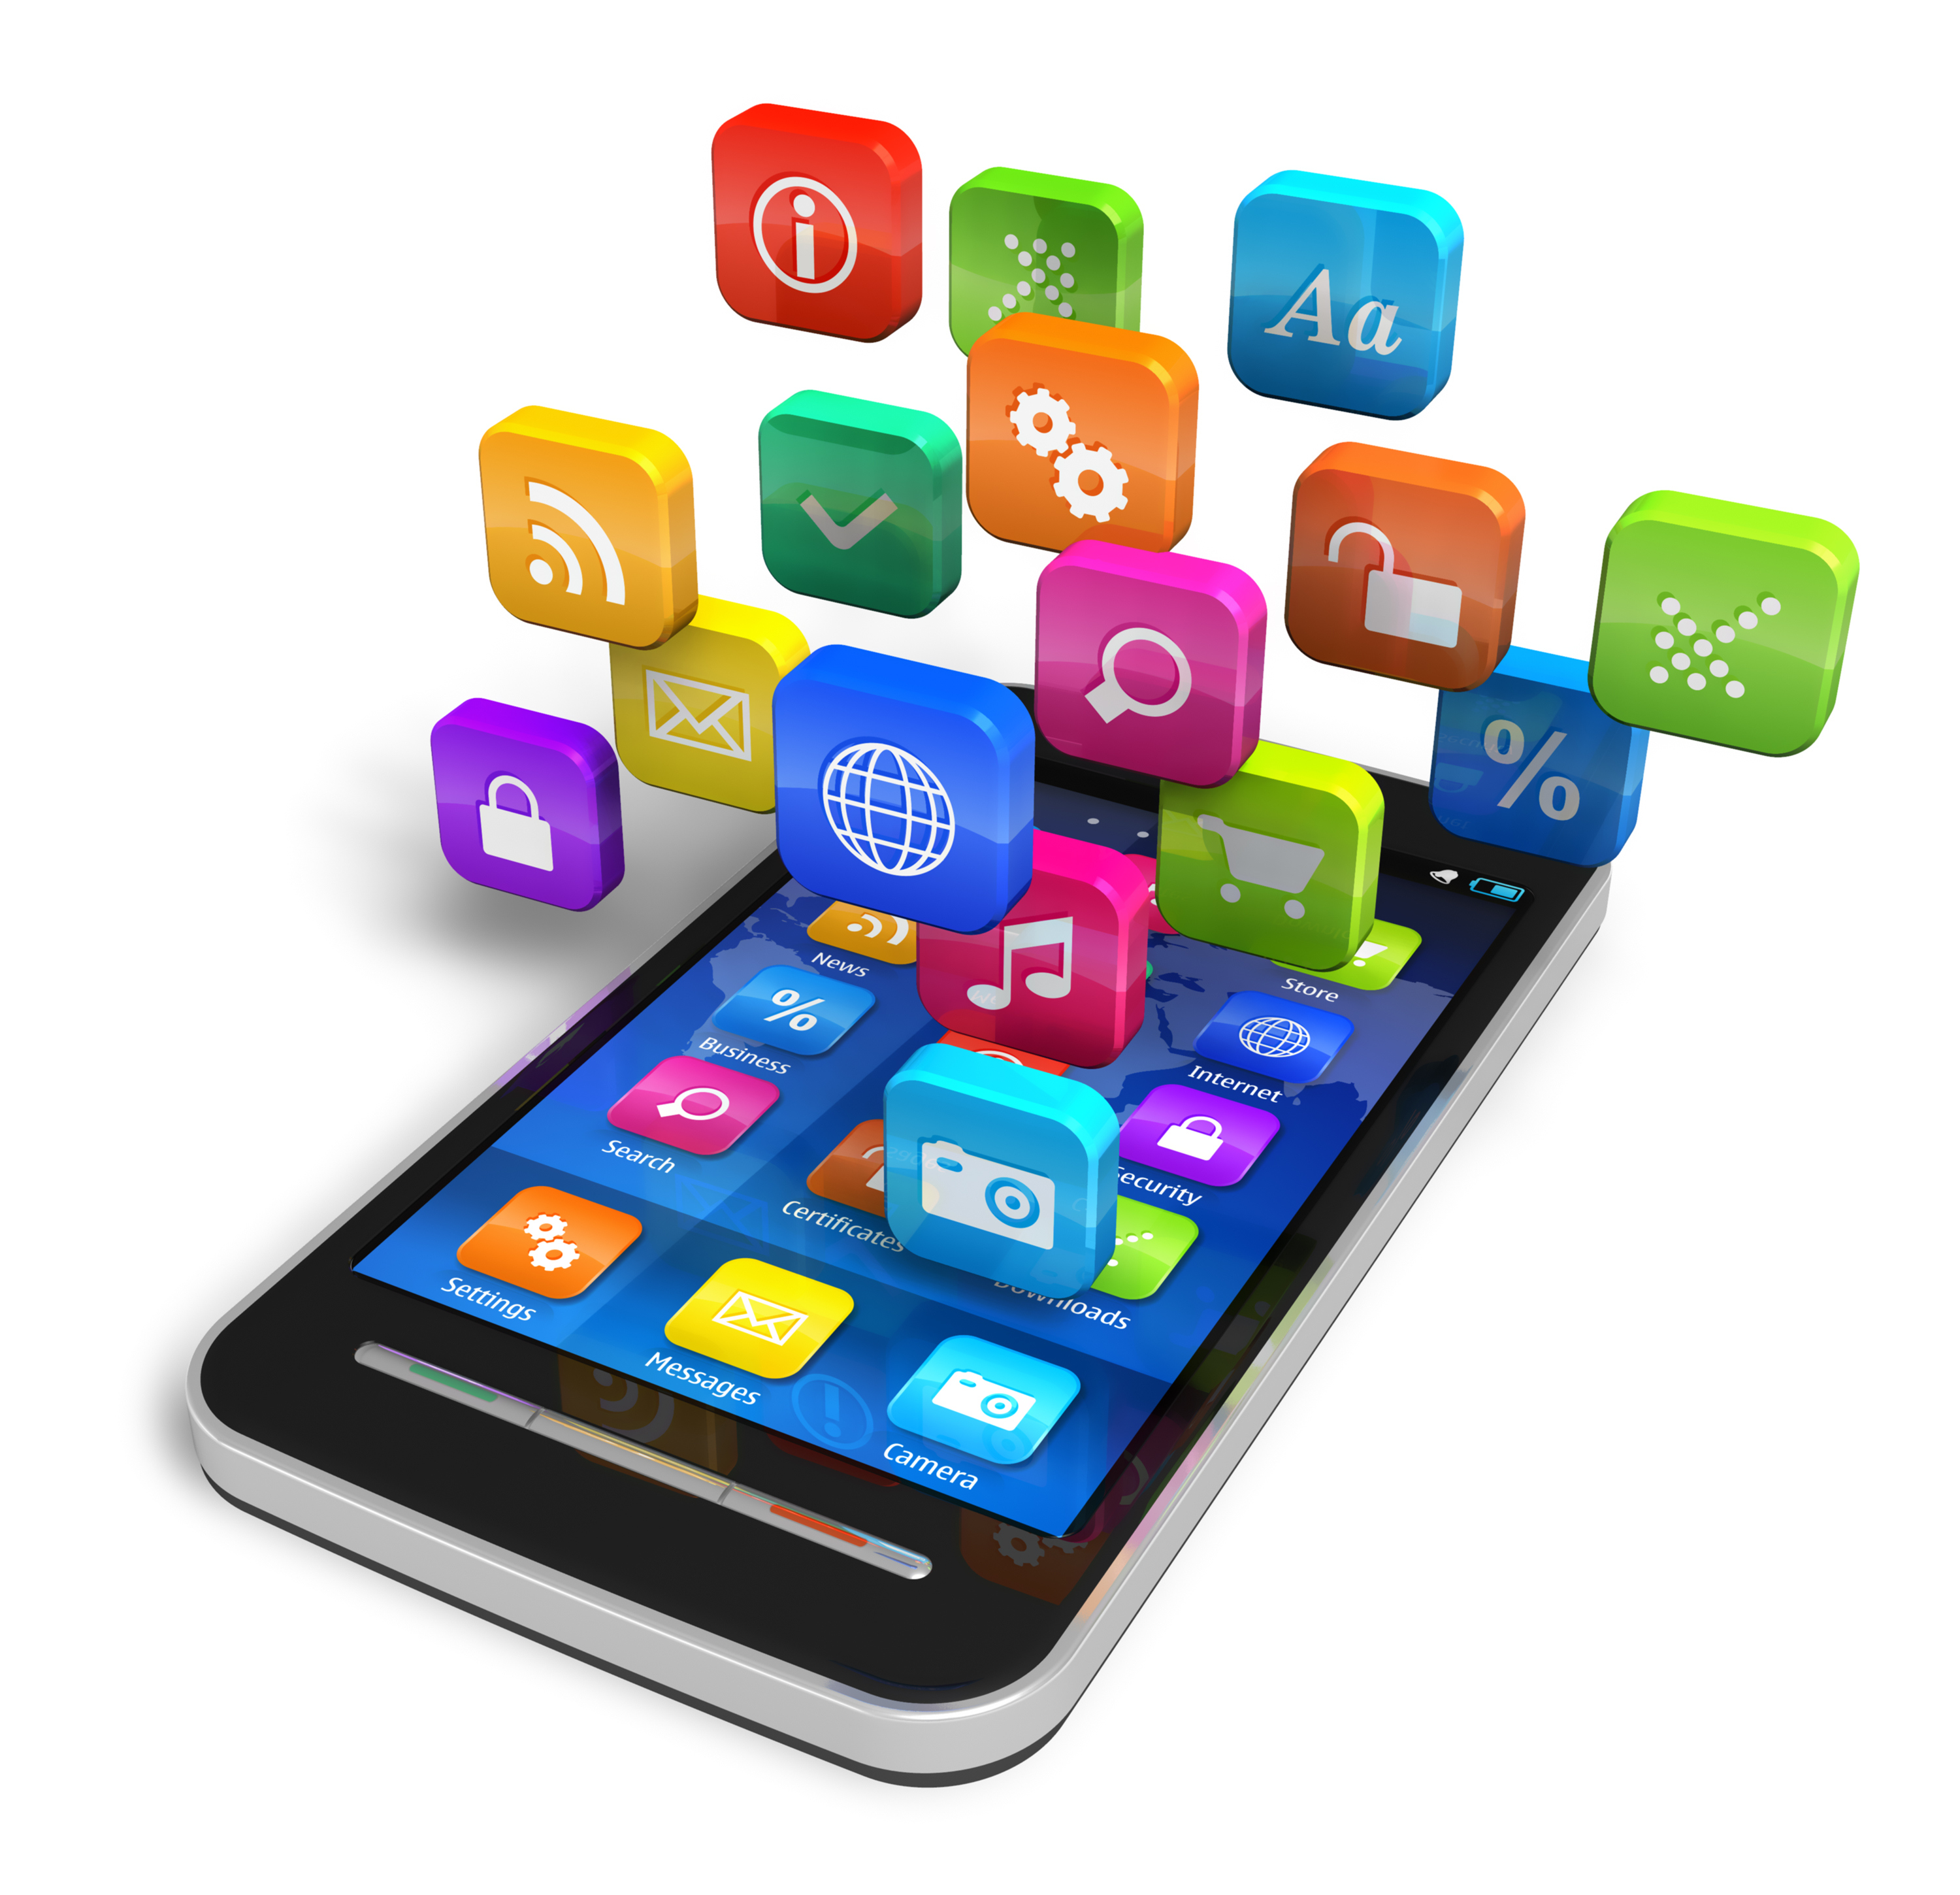 How to Decide Upon The Best iPhone App Development Company